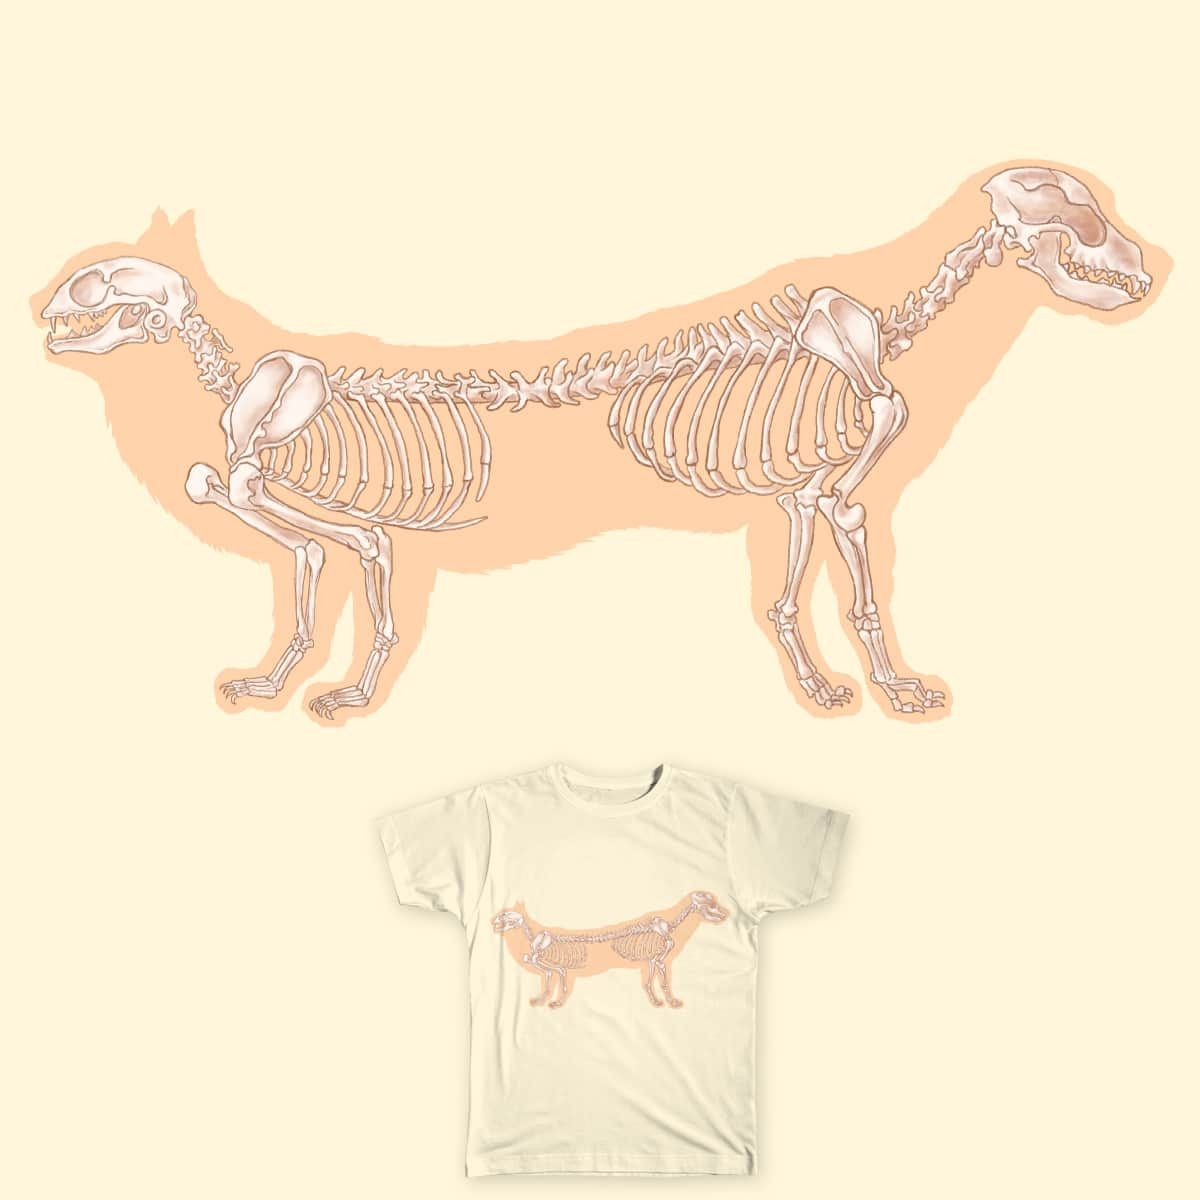 Score CatDog: An Anatomy by Lemonadeproject on Threadless